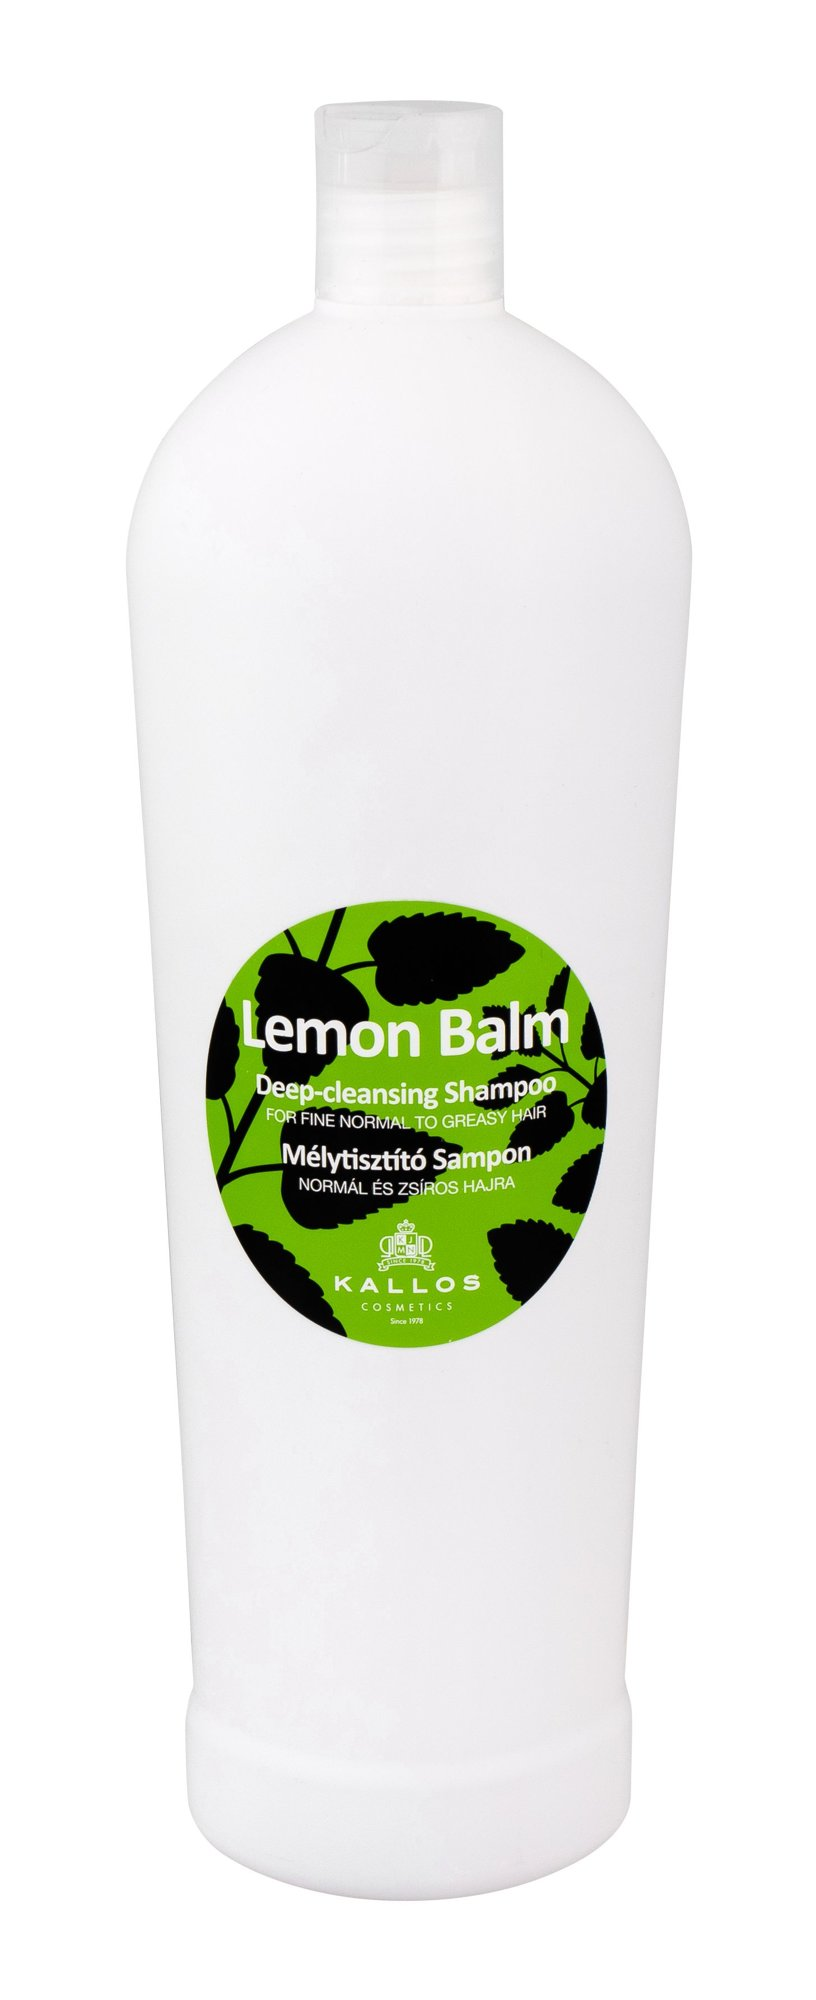 Kallos Cosmetics Lemon Balm Shampoo 1000ml